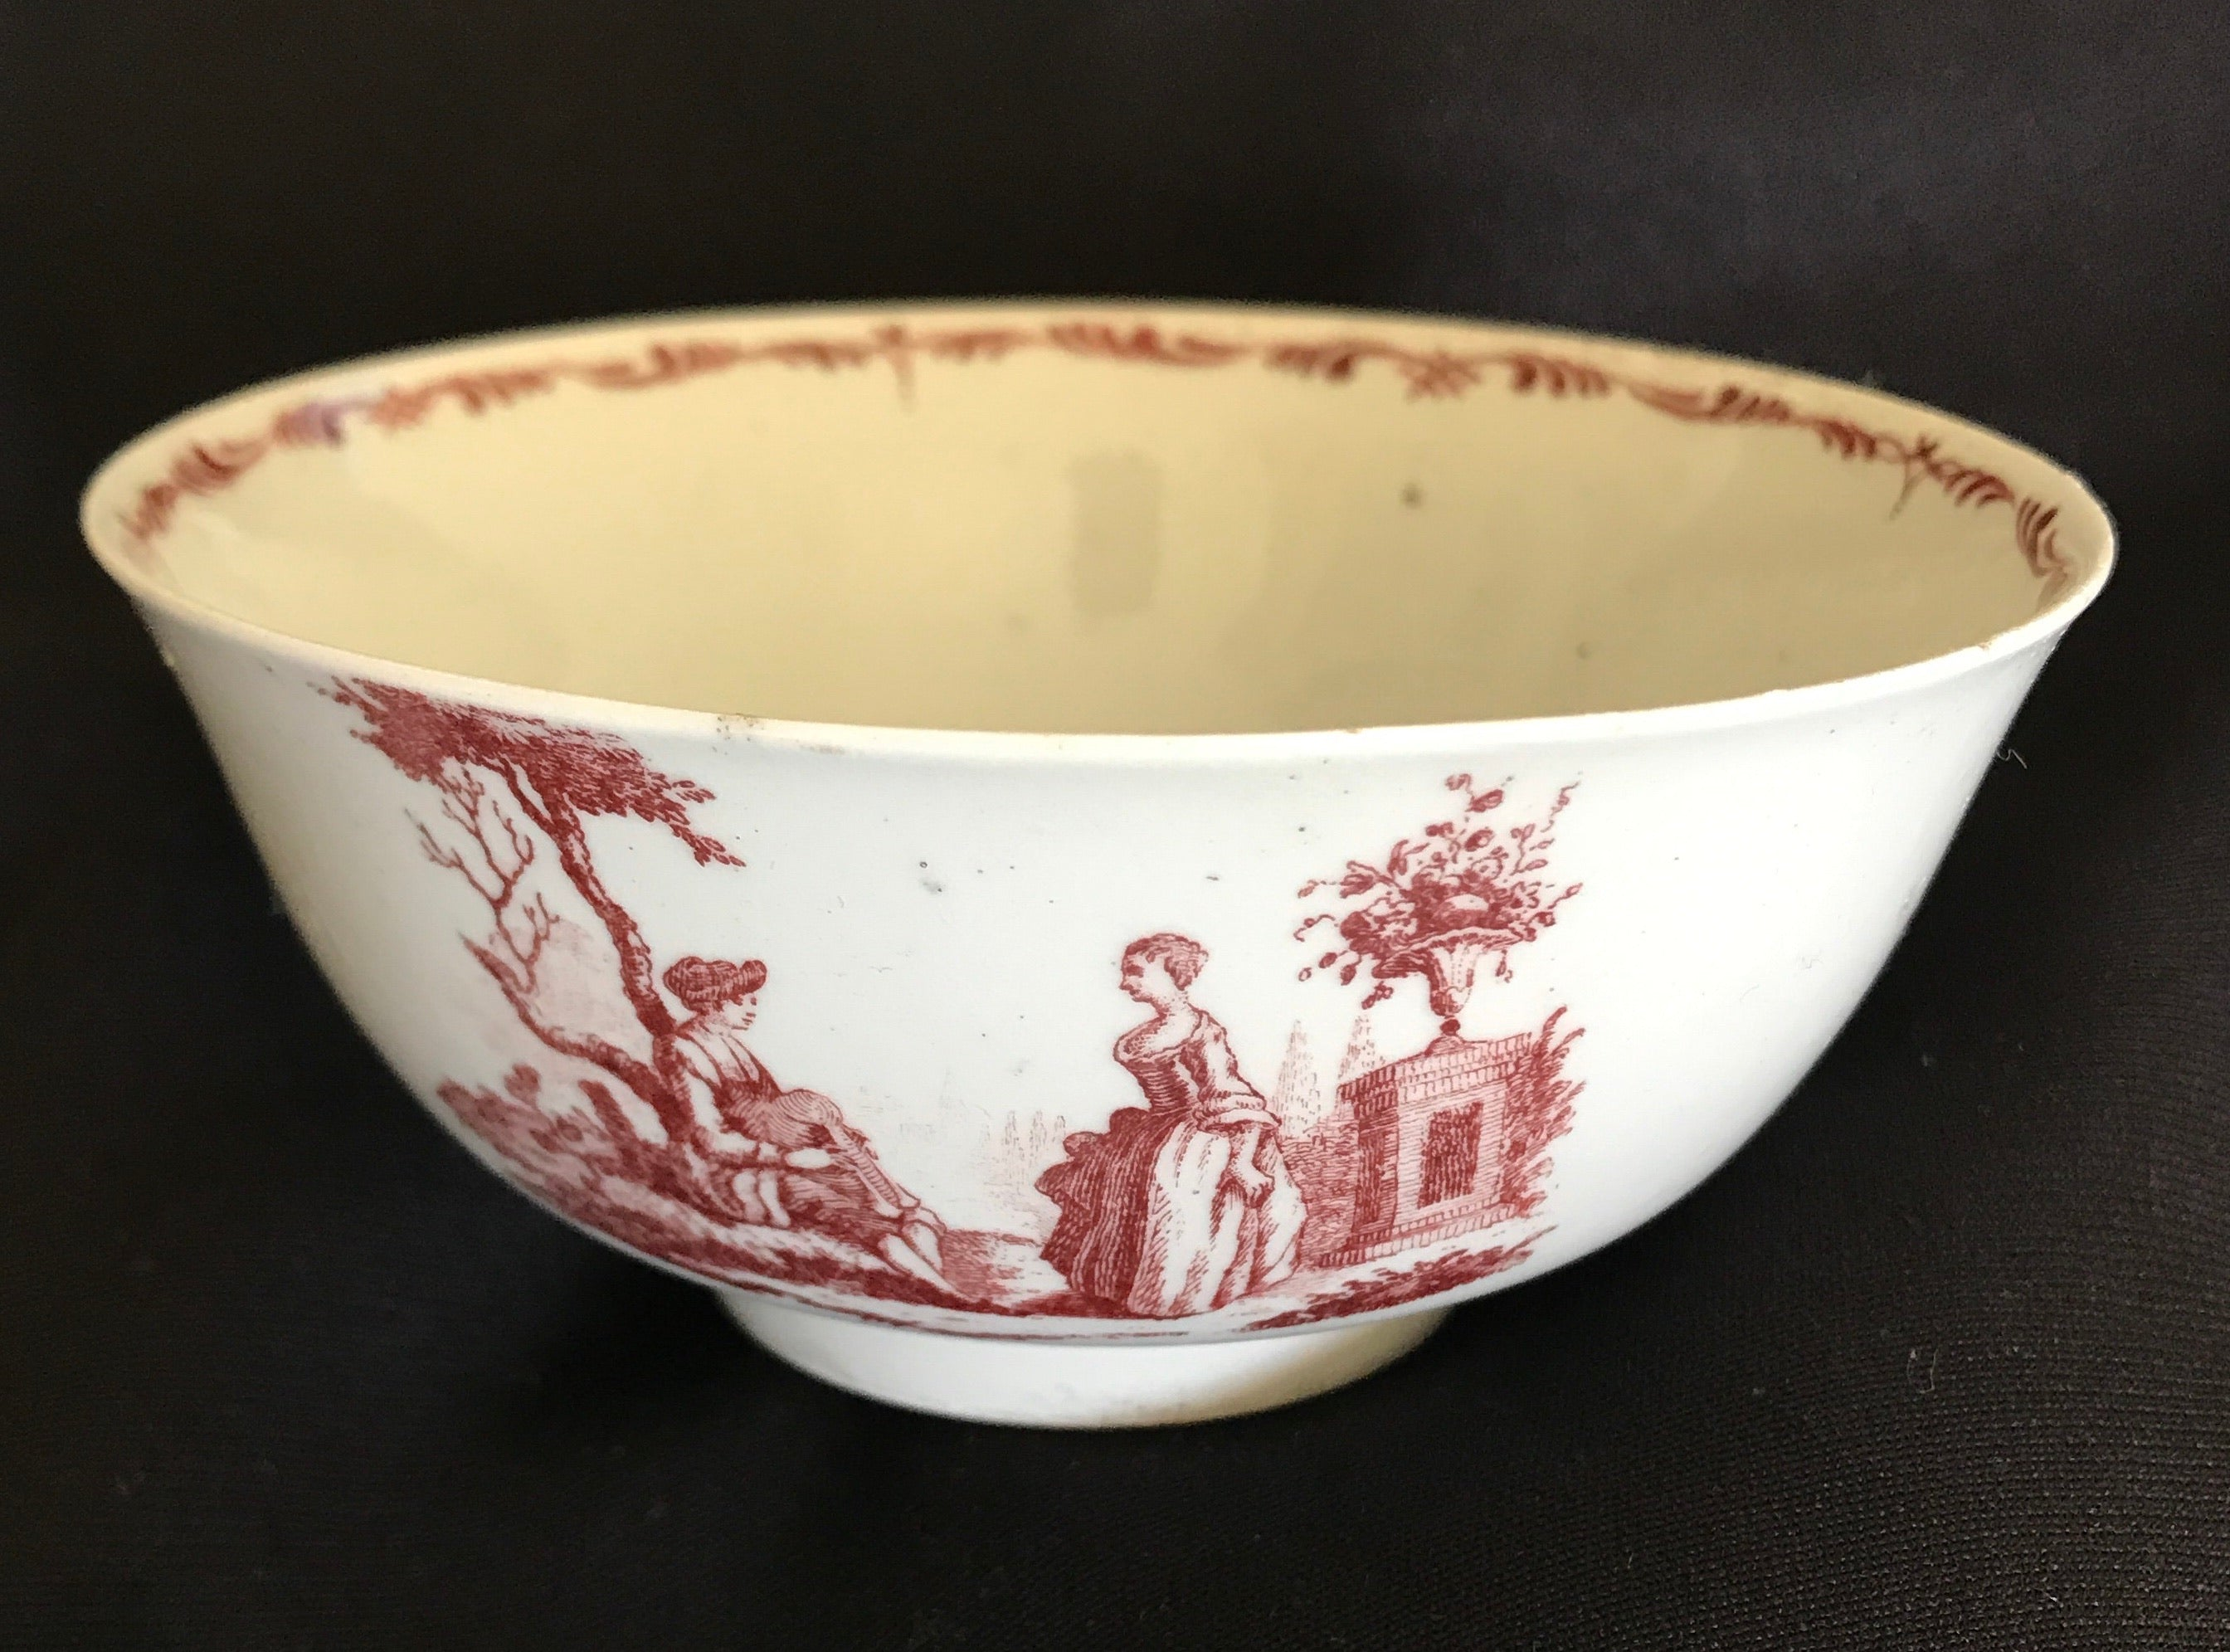 18th Century Worcester Porcelain Bowl Transfer-Printed in Red.